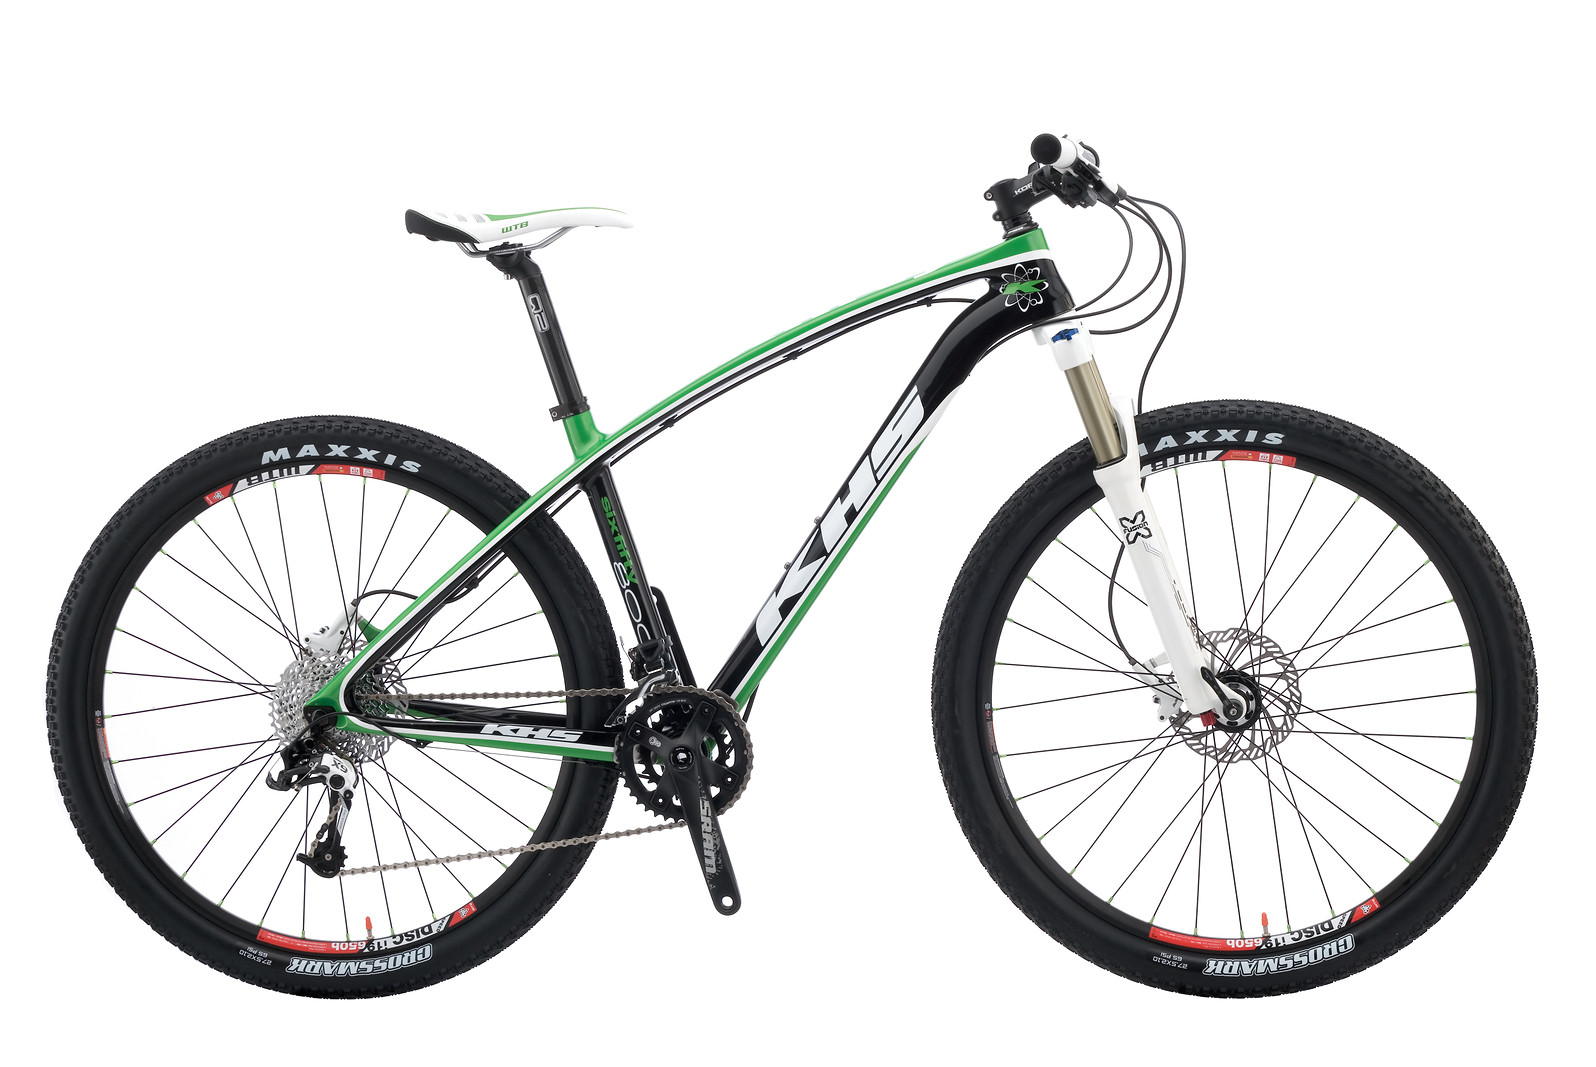 2013 KHS SixFifty 800 Bike 2013 SixFifty 800